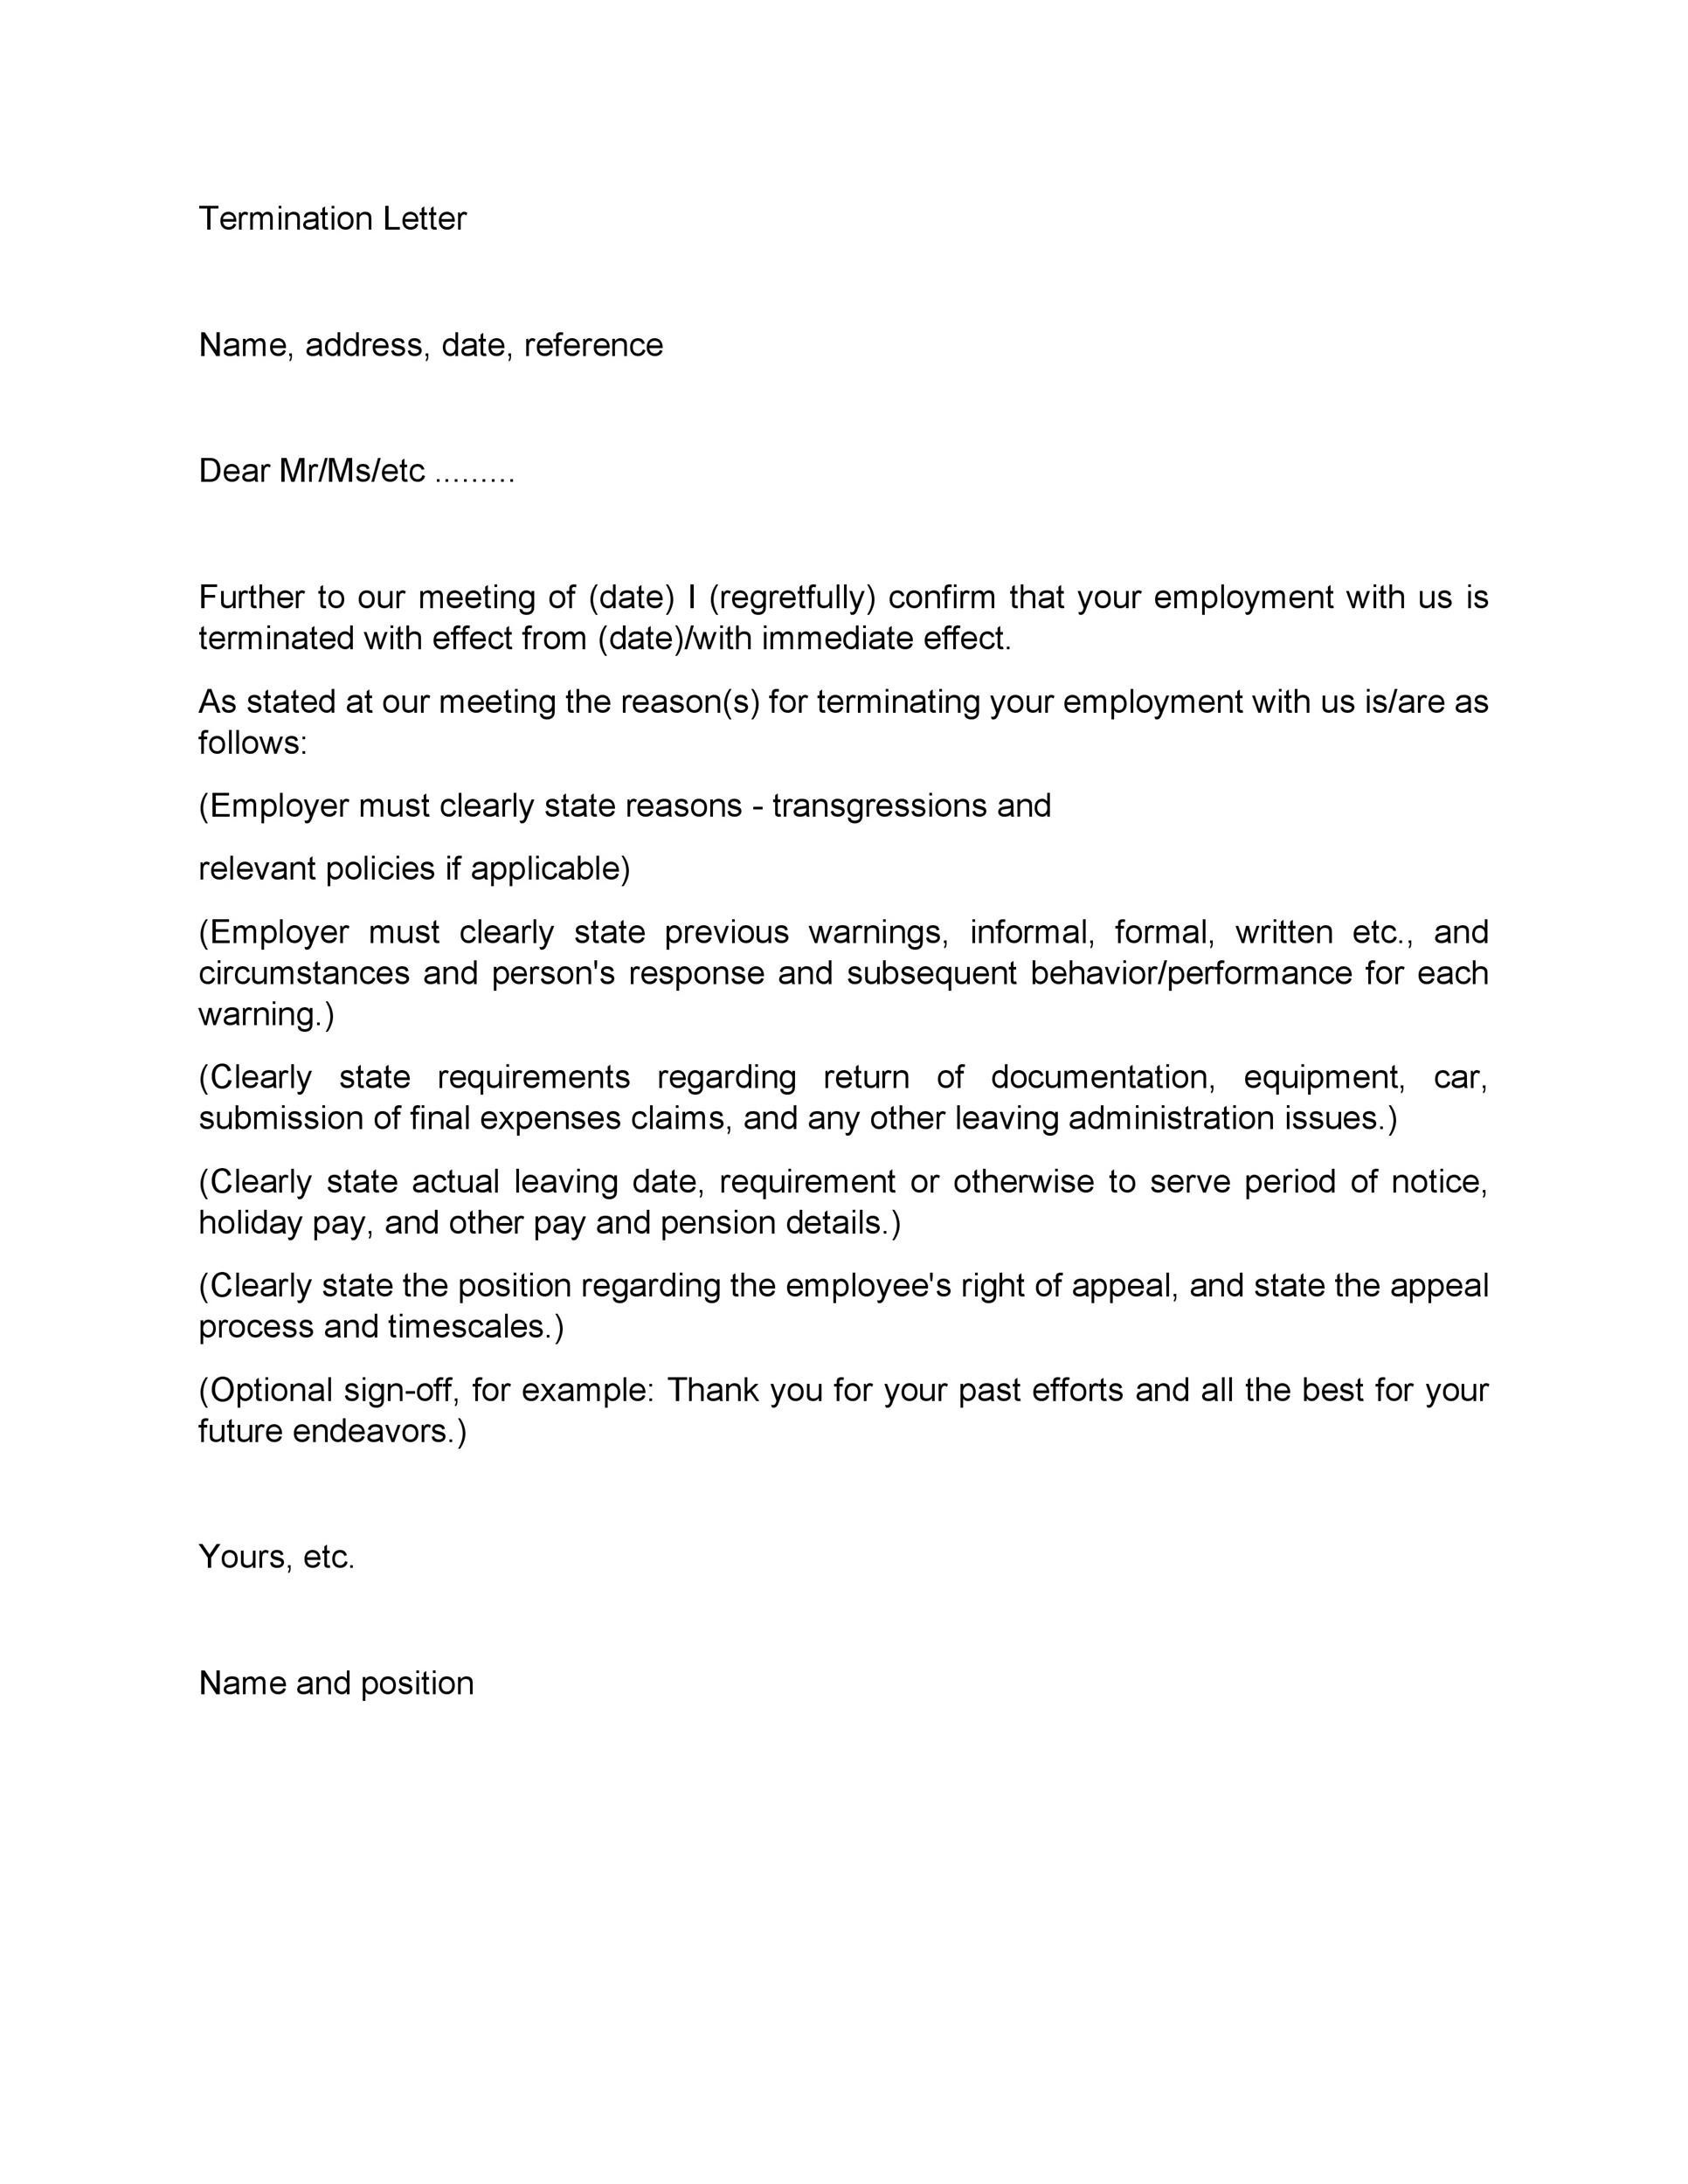 35 perfect termination letter samples lease employee contract employee termination letter spiritdancerdesigns Images